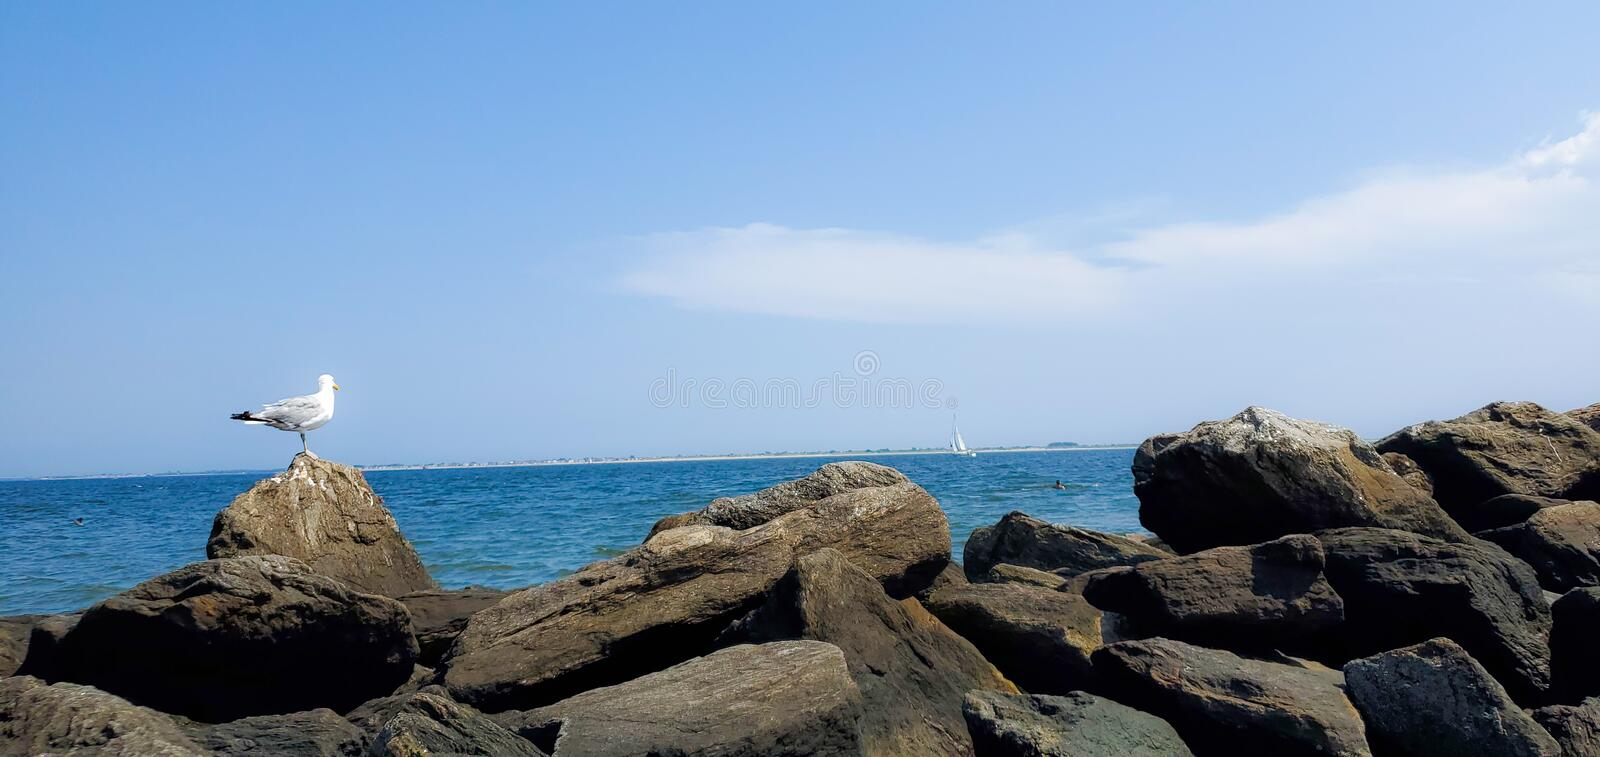 Seagull sitting on rocks by ocean royalty free stock photography